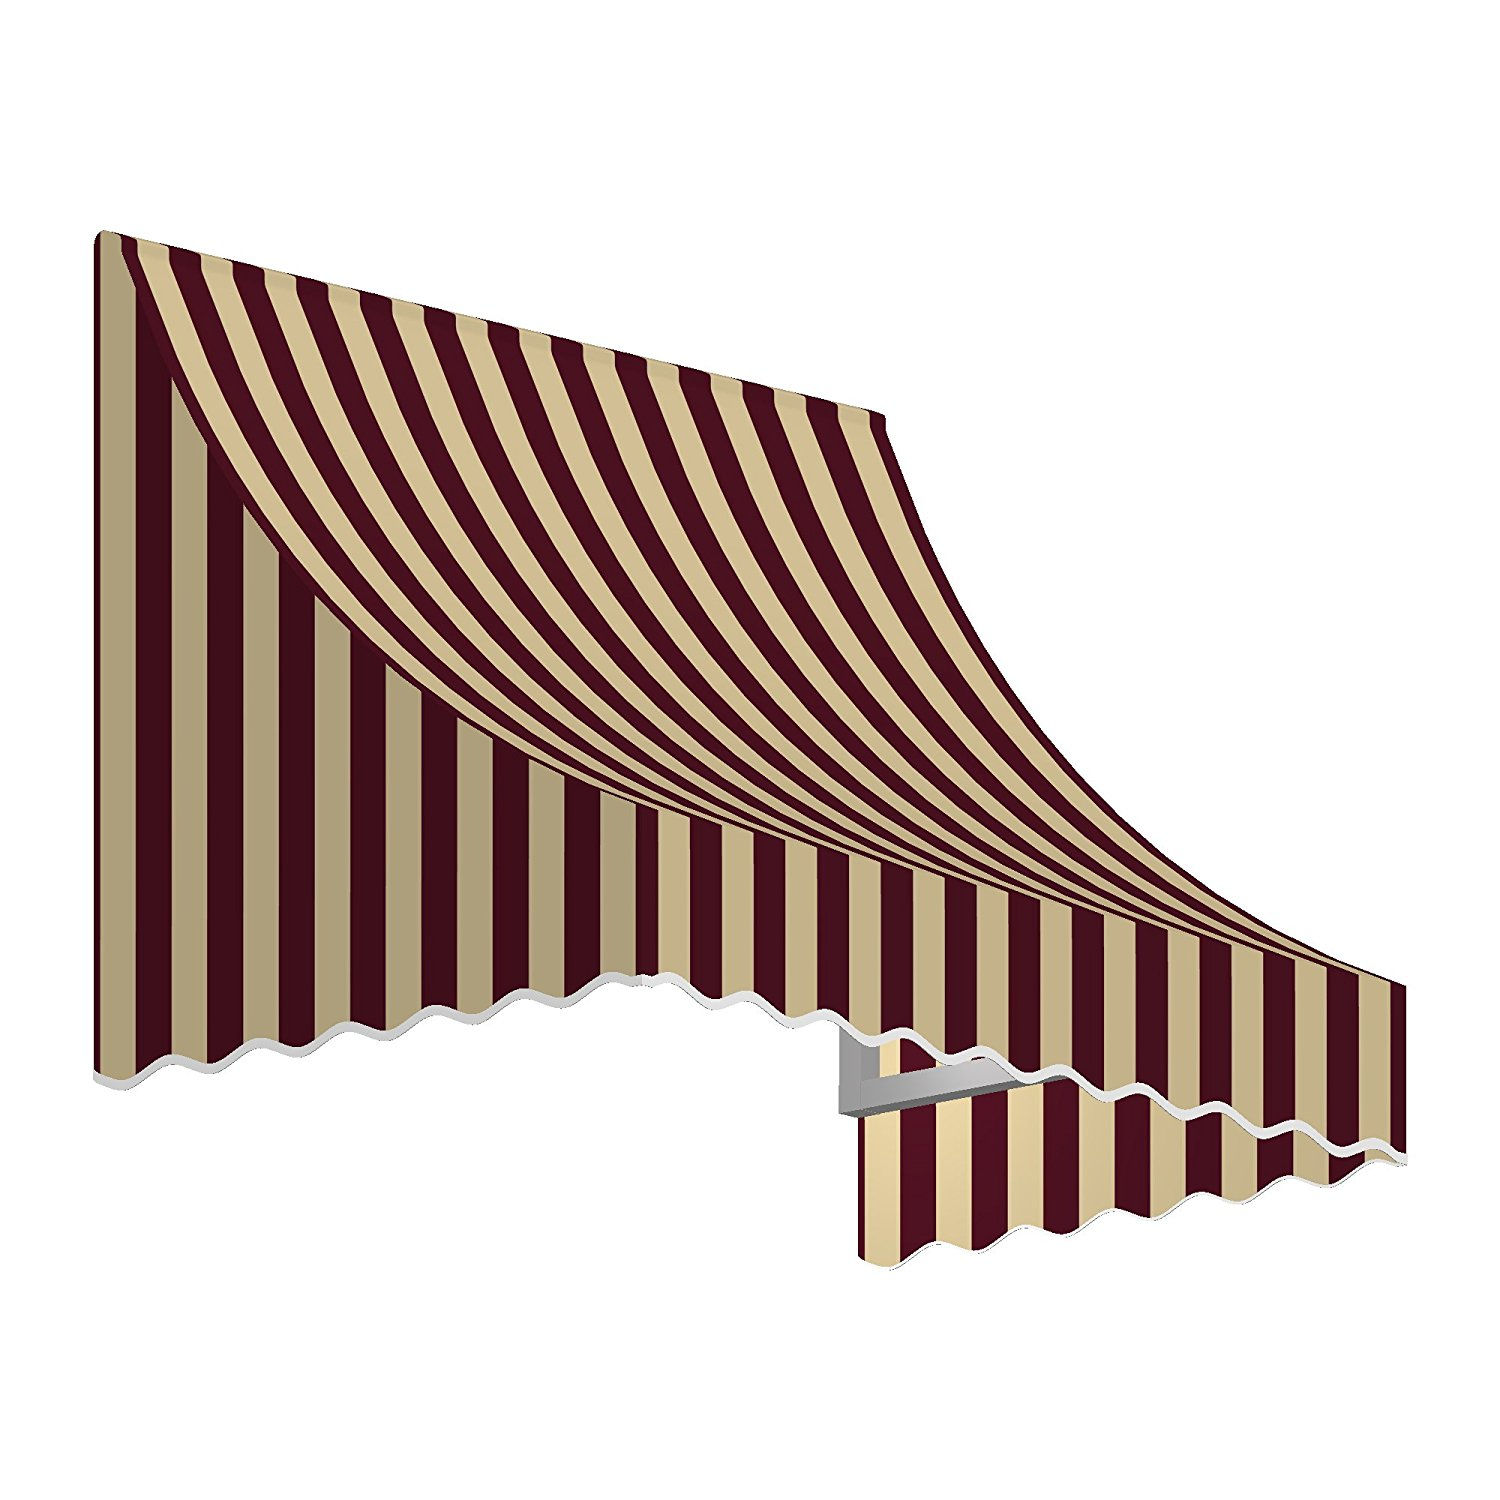 Beauty-Mark NT22-a-5BT Window/Entry Awning, not applicable, Multicolor